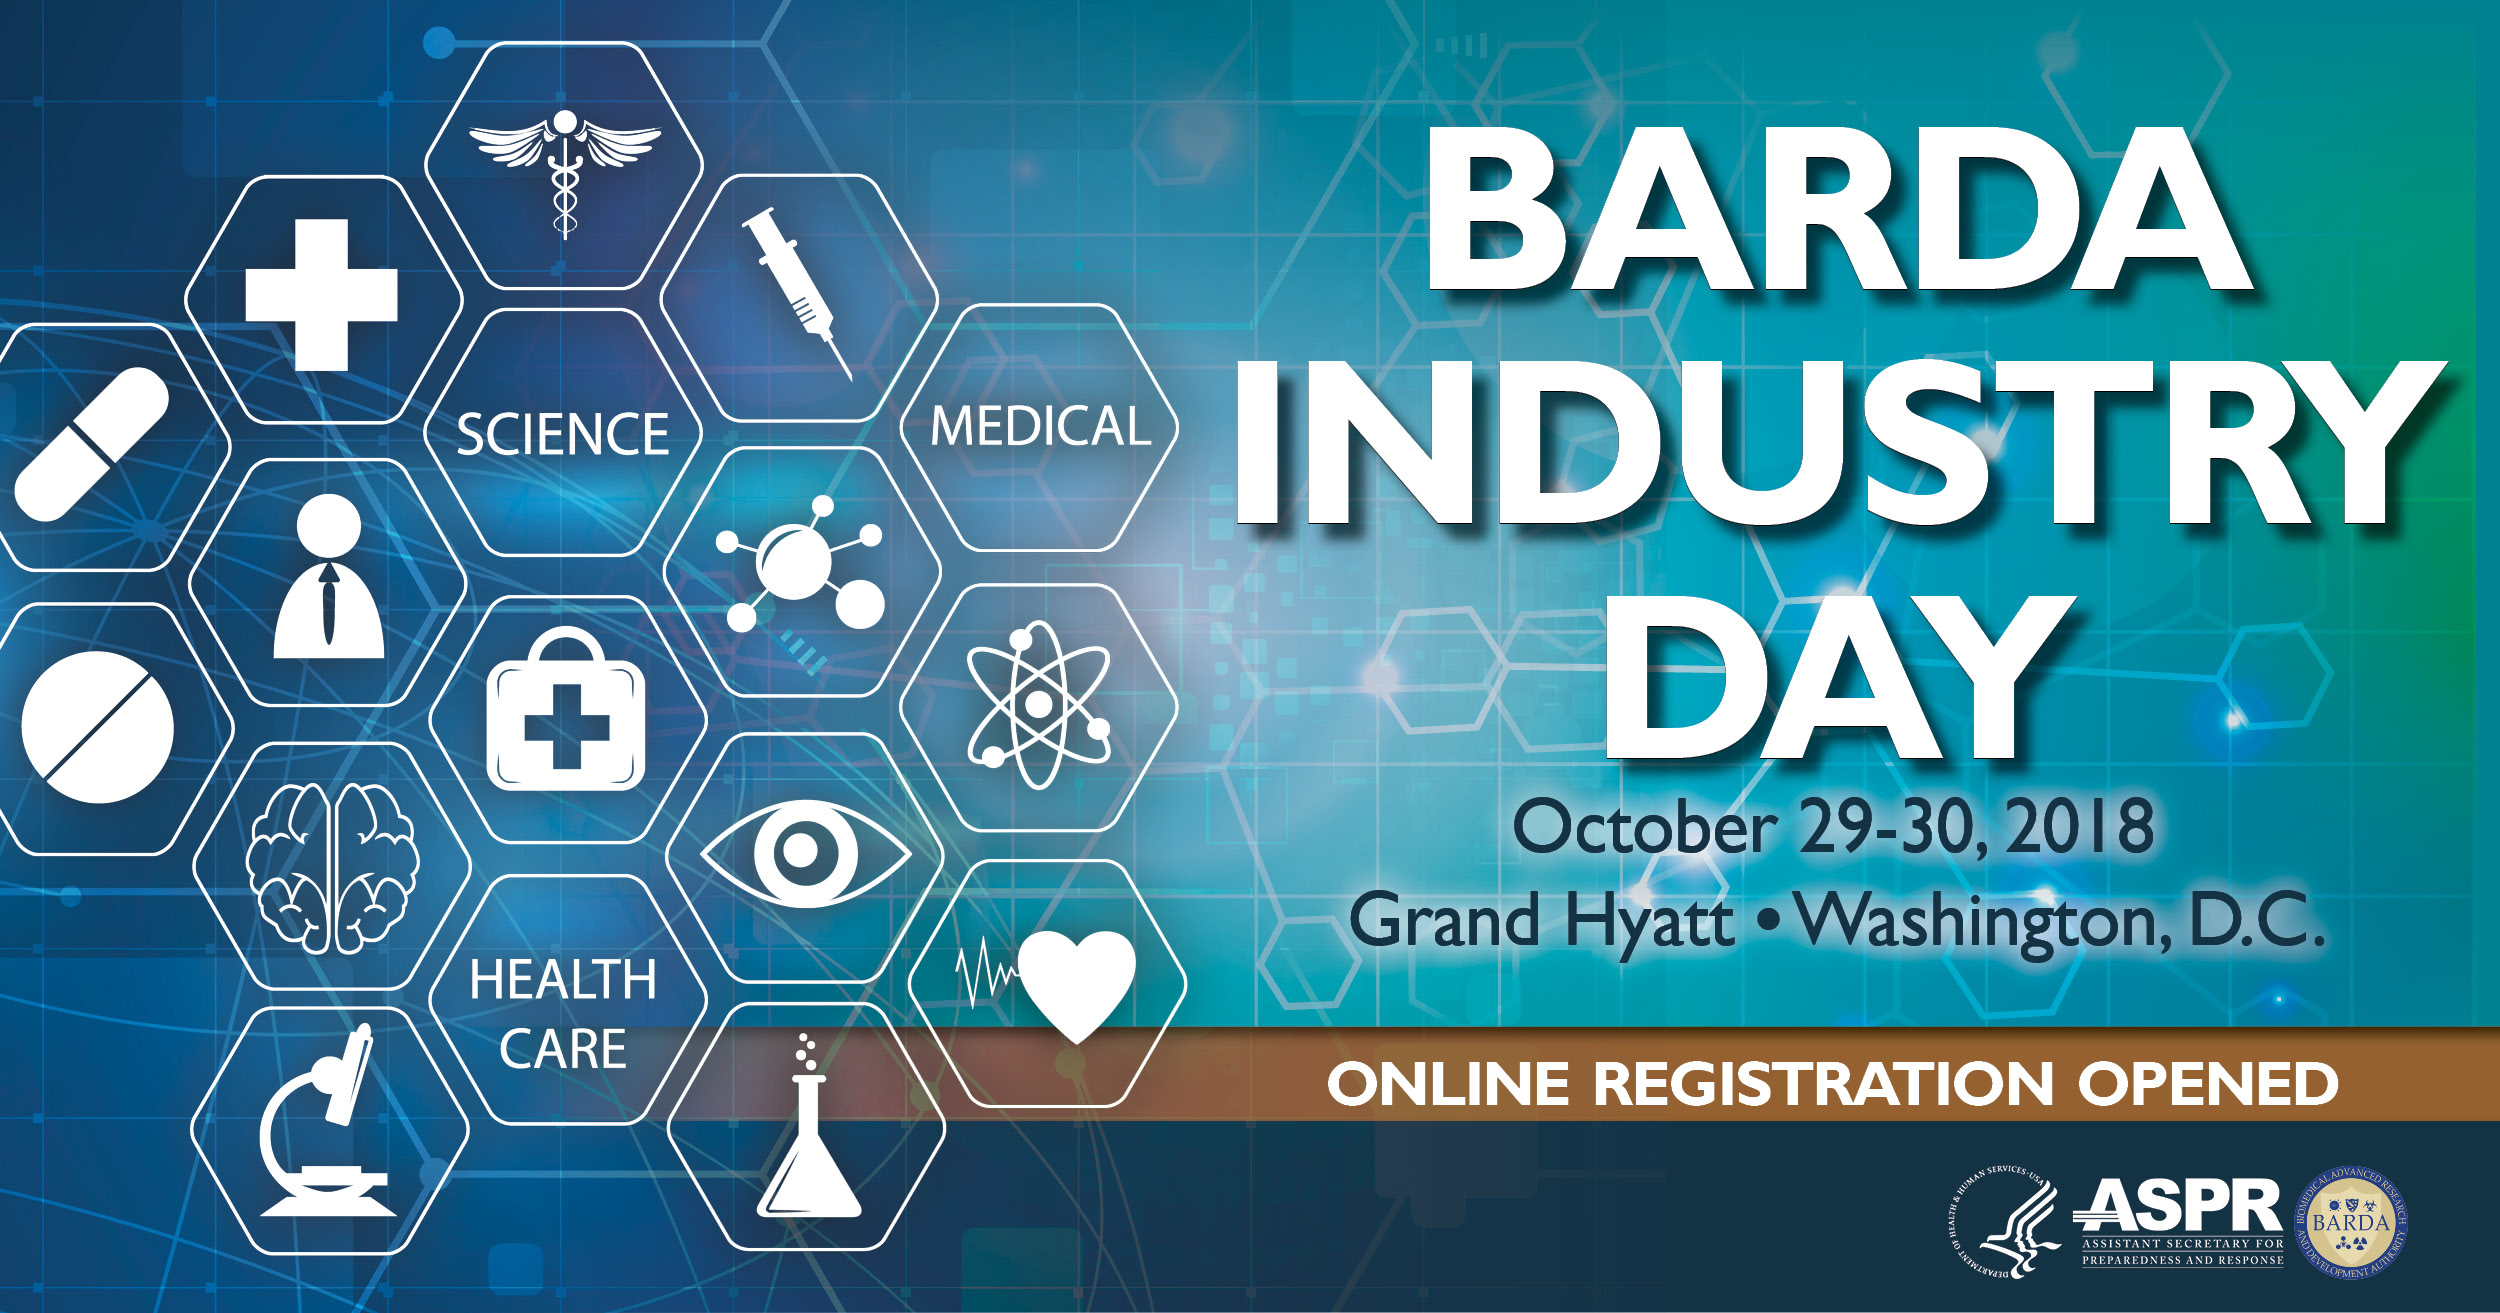 BARDA Industry Day Banner